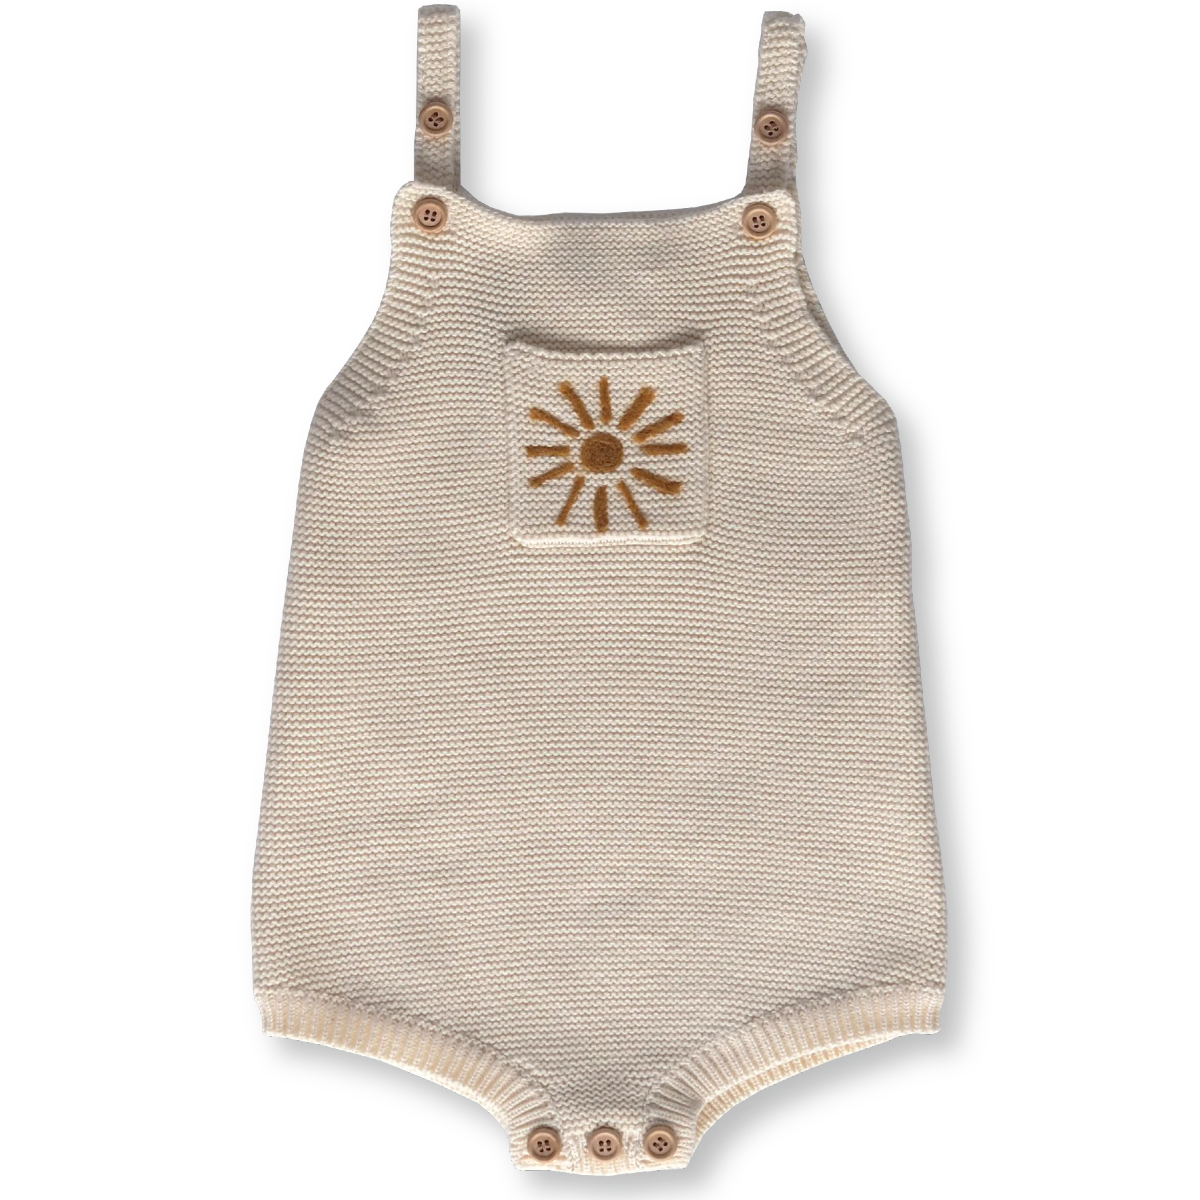 US stockist of Grown Clothing organic cotton pearl knit romper in milk with sun embroidery.